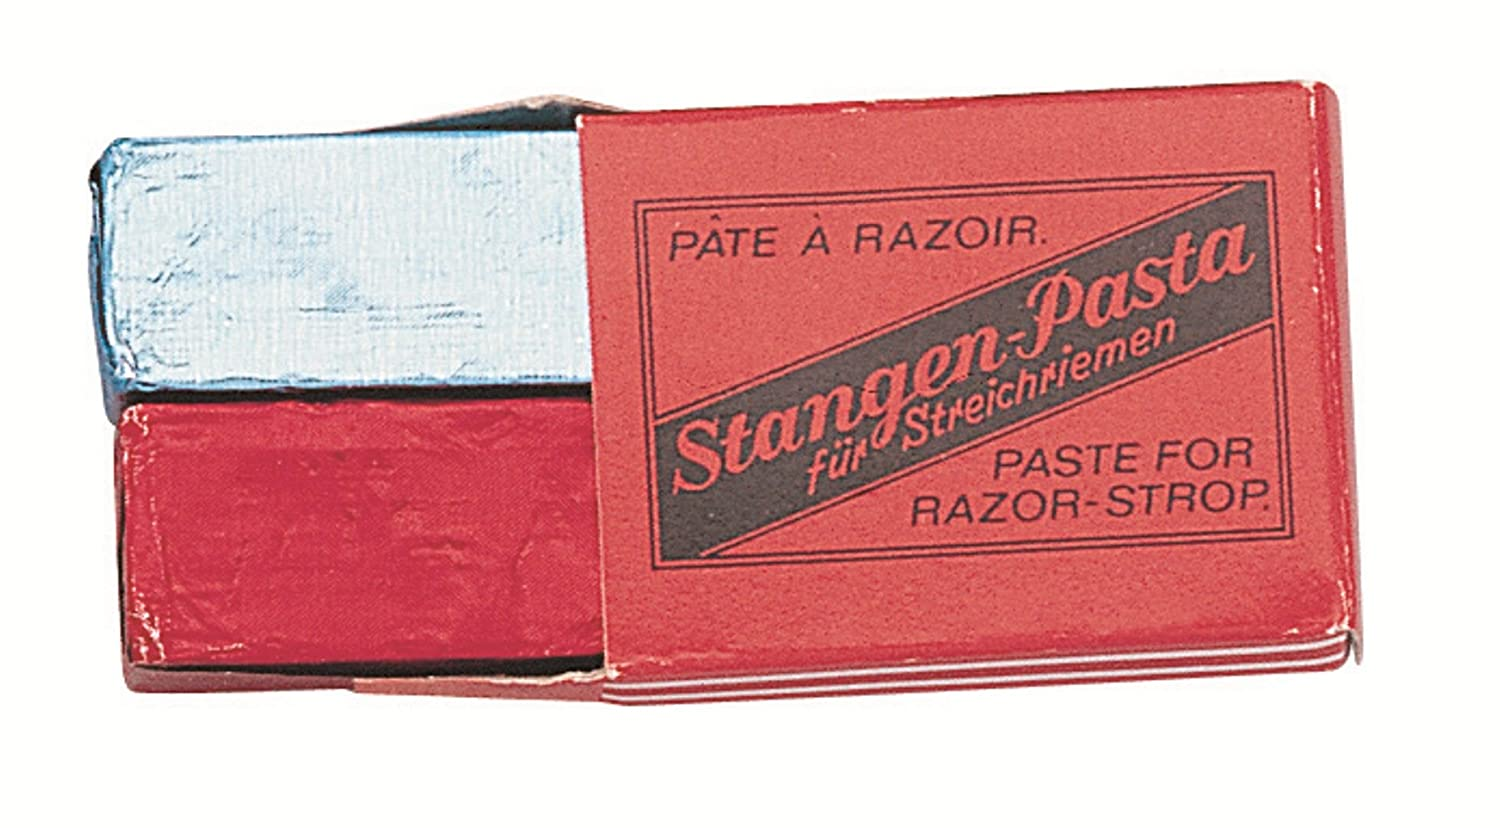 Nc - 9501 - Box with 2 Blocks of Razor Strop Paste - Red for Sharpening and Blue for Polishing by Nc BeautyCentre